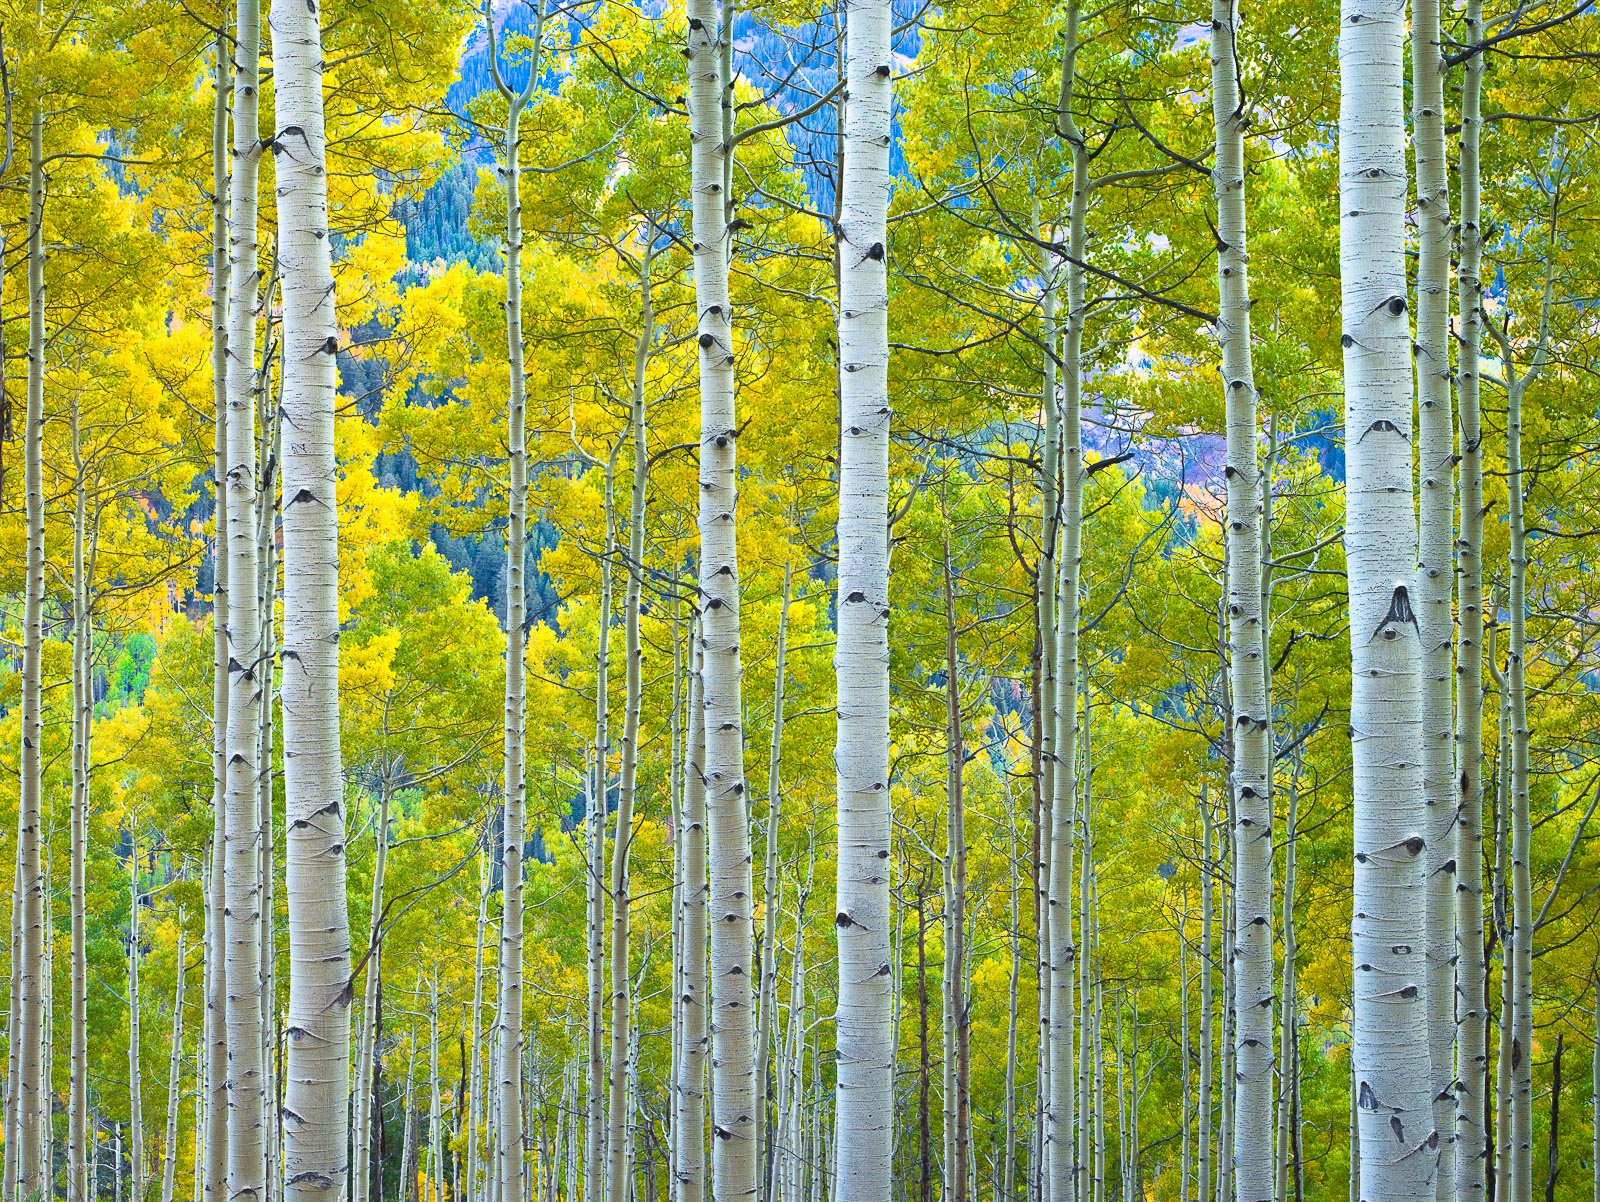 Aspen,Colorado,Fall,Forest,Green,Seasonal,Trees,Yellow,autumn, photo